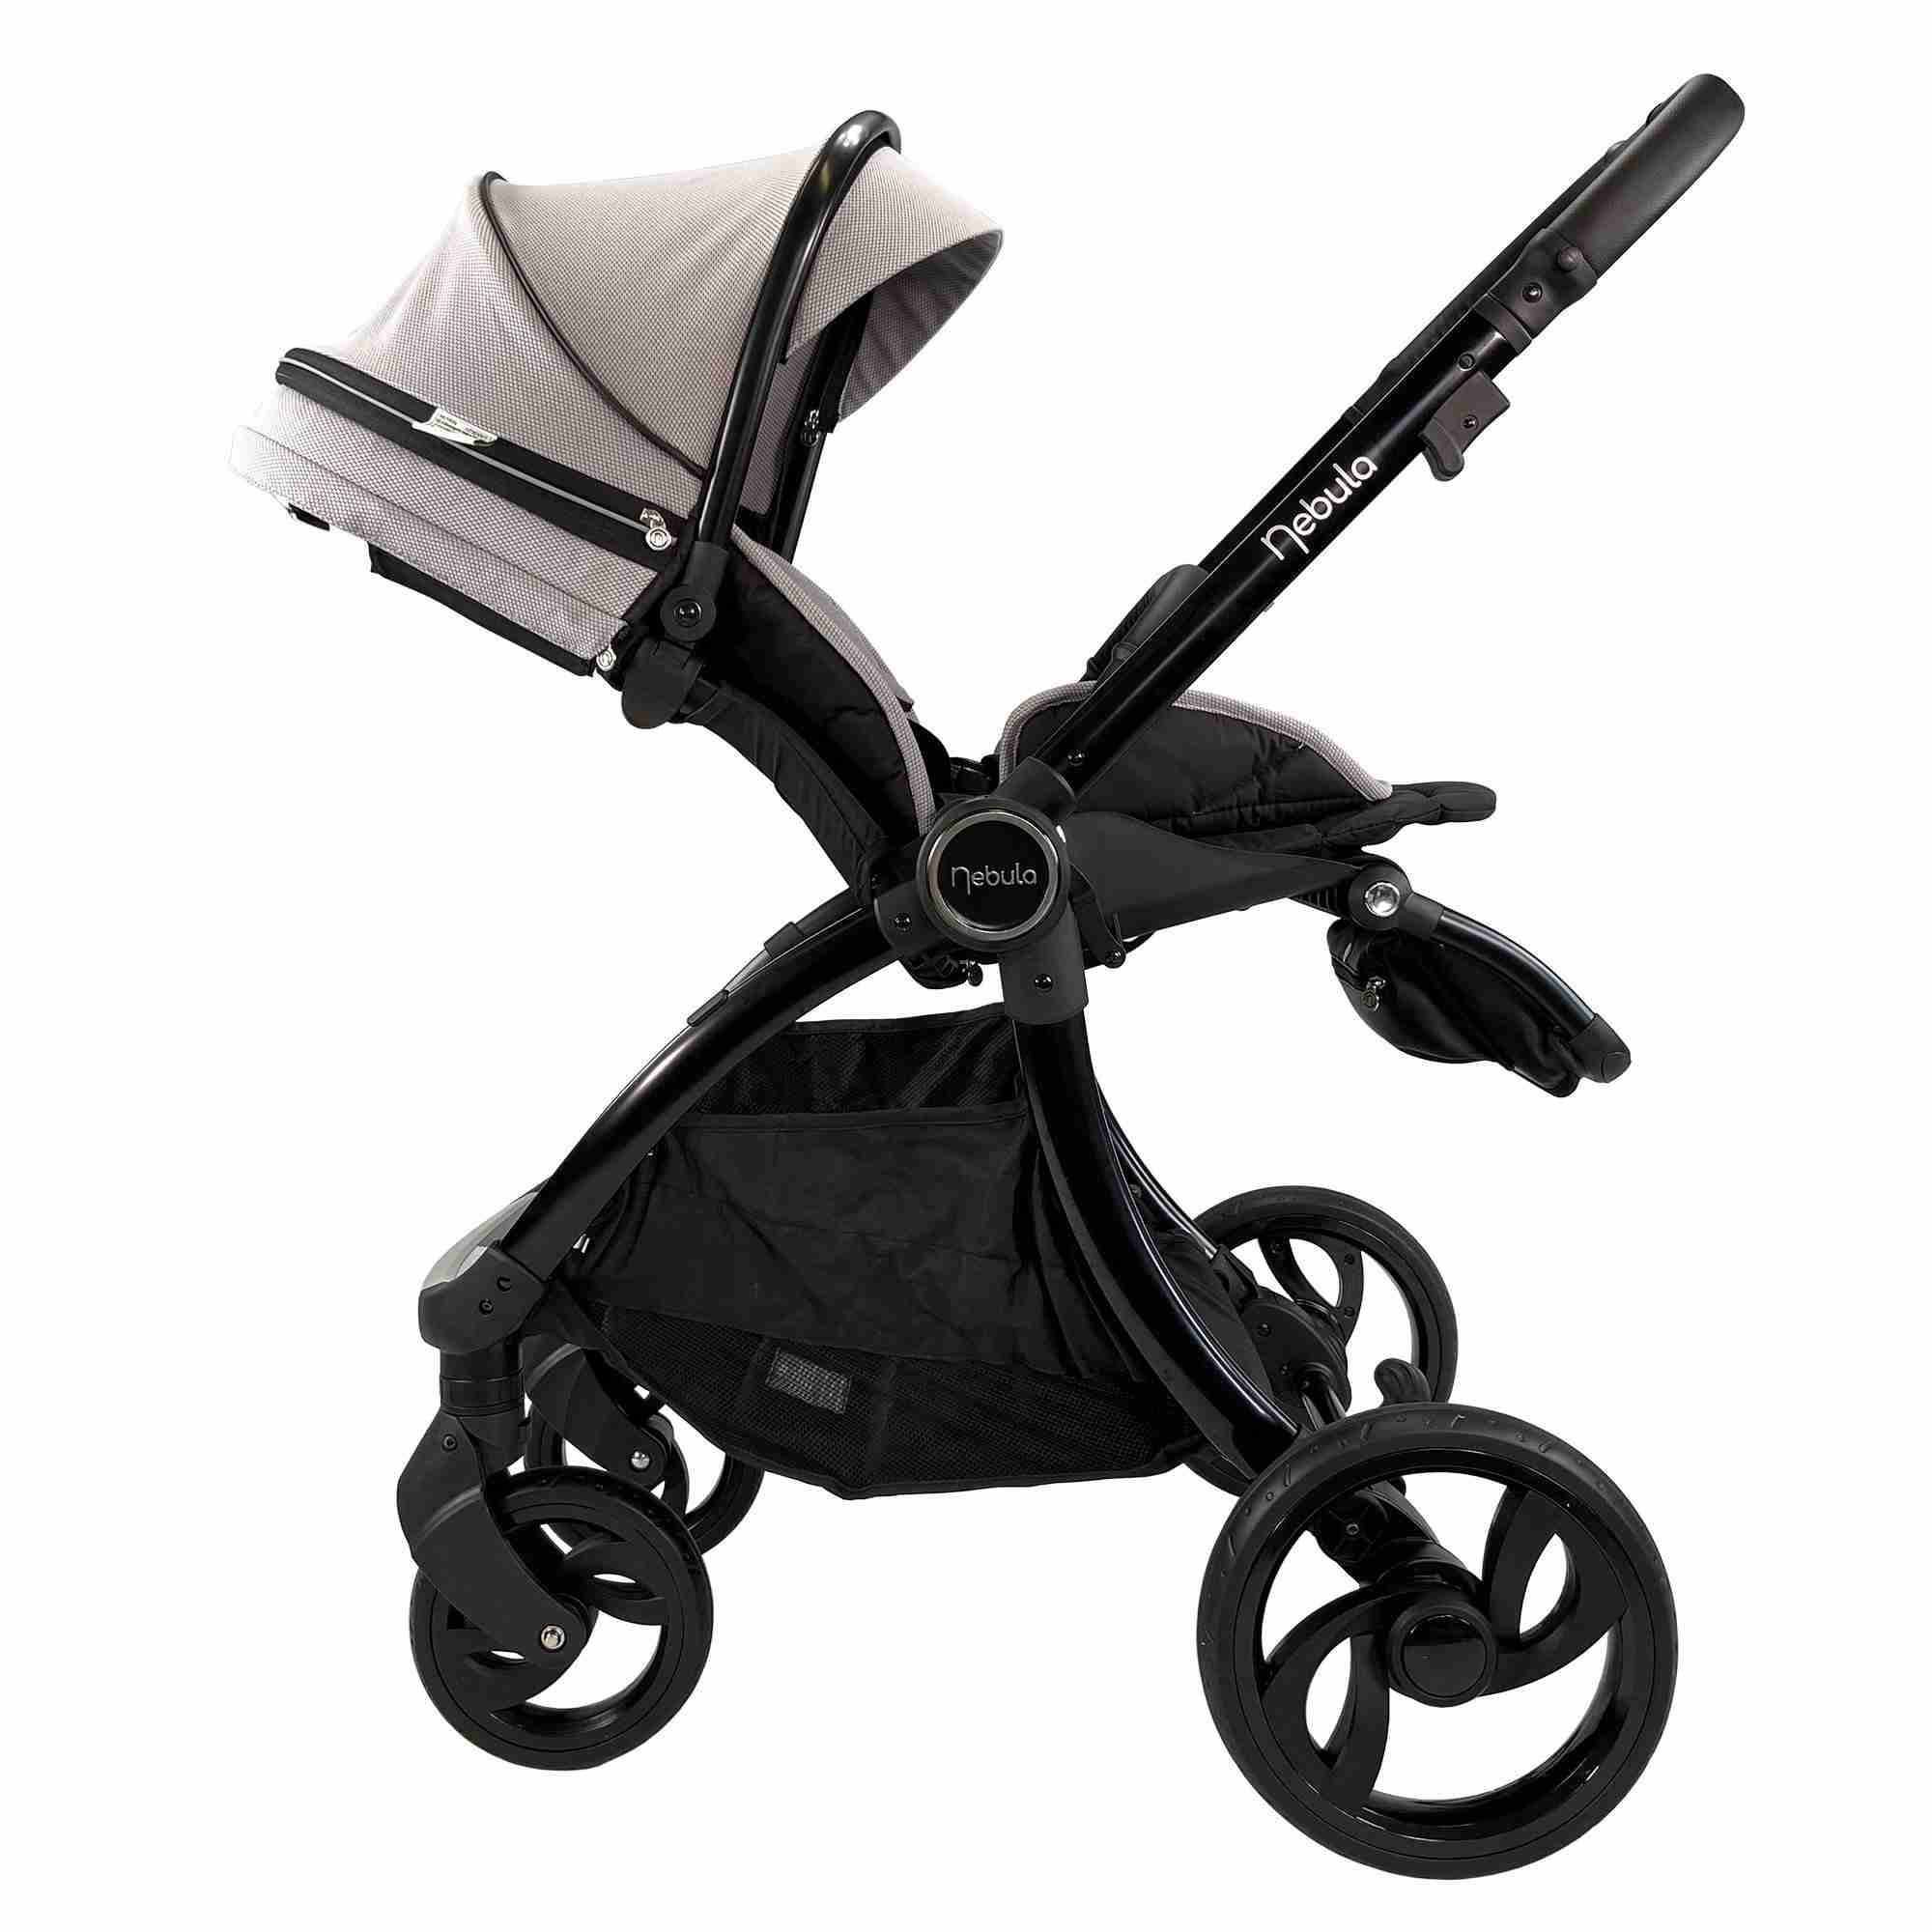 Venture Nebula Stroller Cool Grey in reclined position